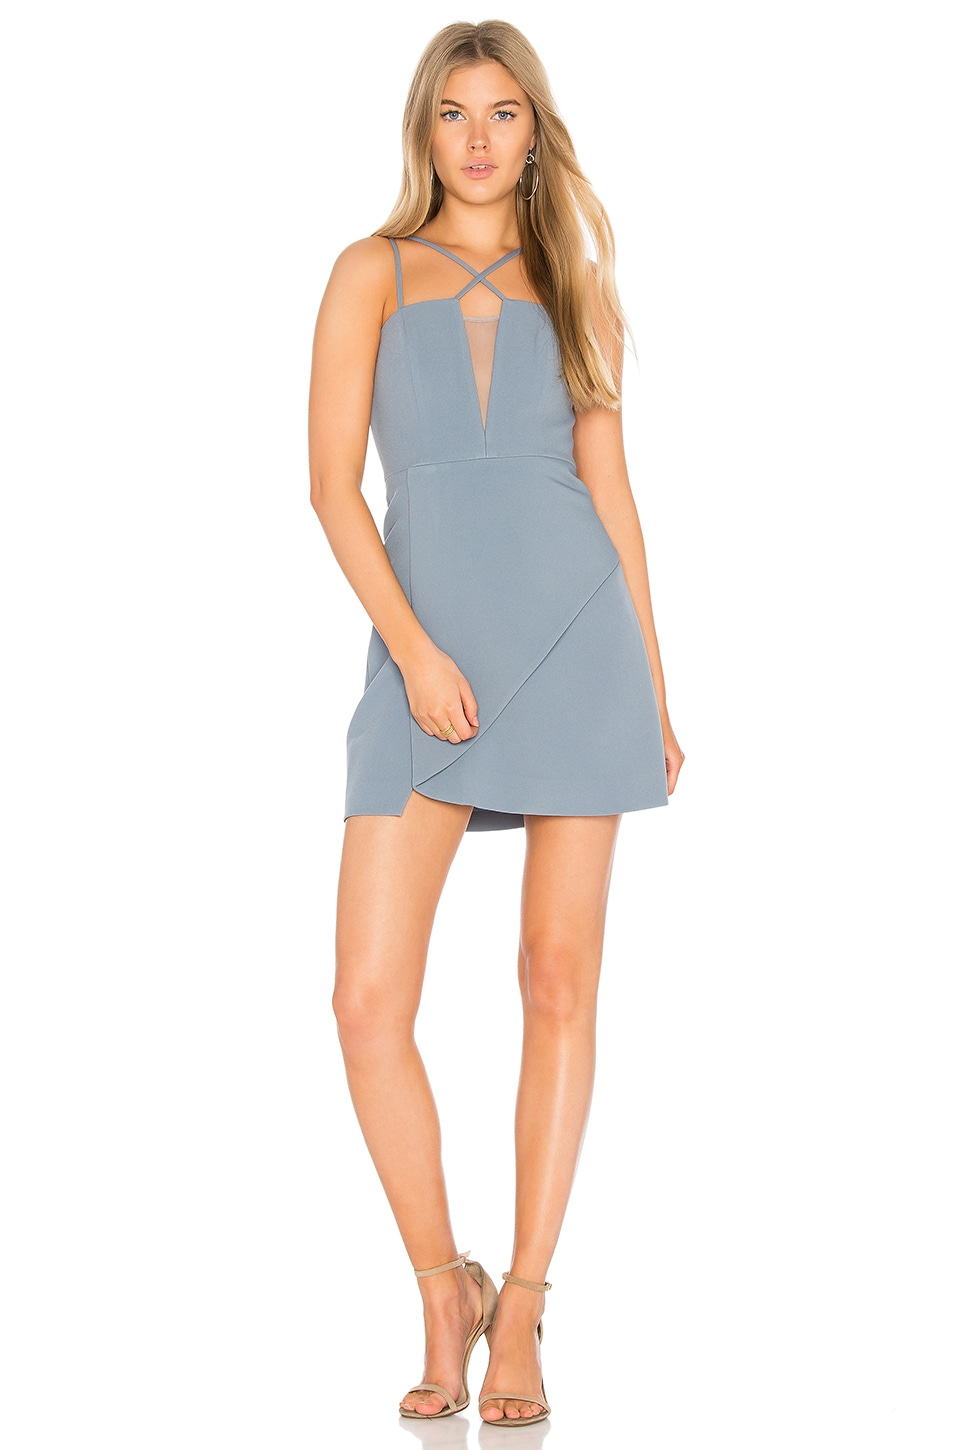 BCBGMAXAZRIA Linzee Dress in Light Blue Haze